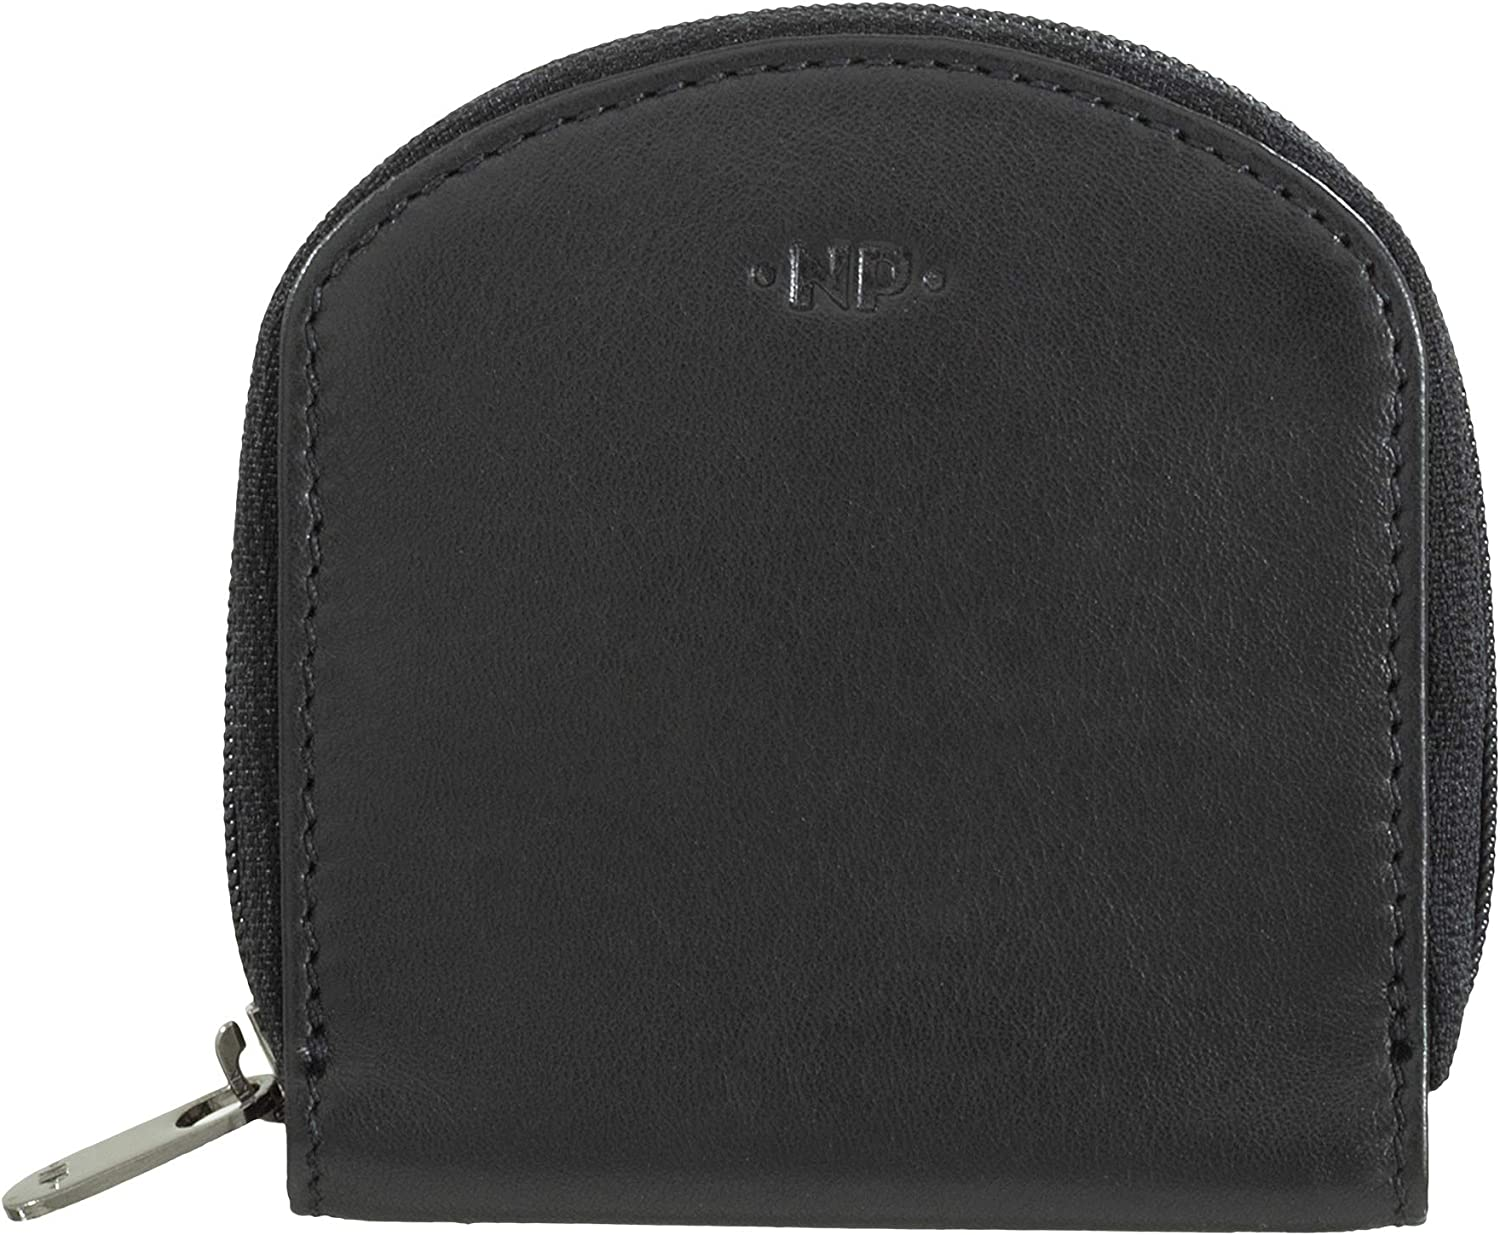 Nuvola Pelle Coin Purse in Soft Leather Nappa Coin Tray Well Shape with Zipper Around